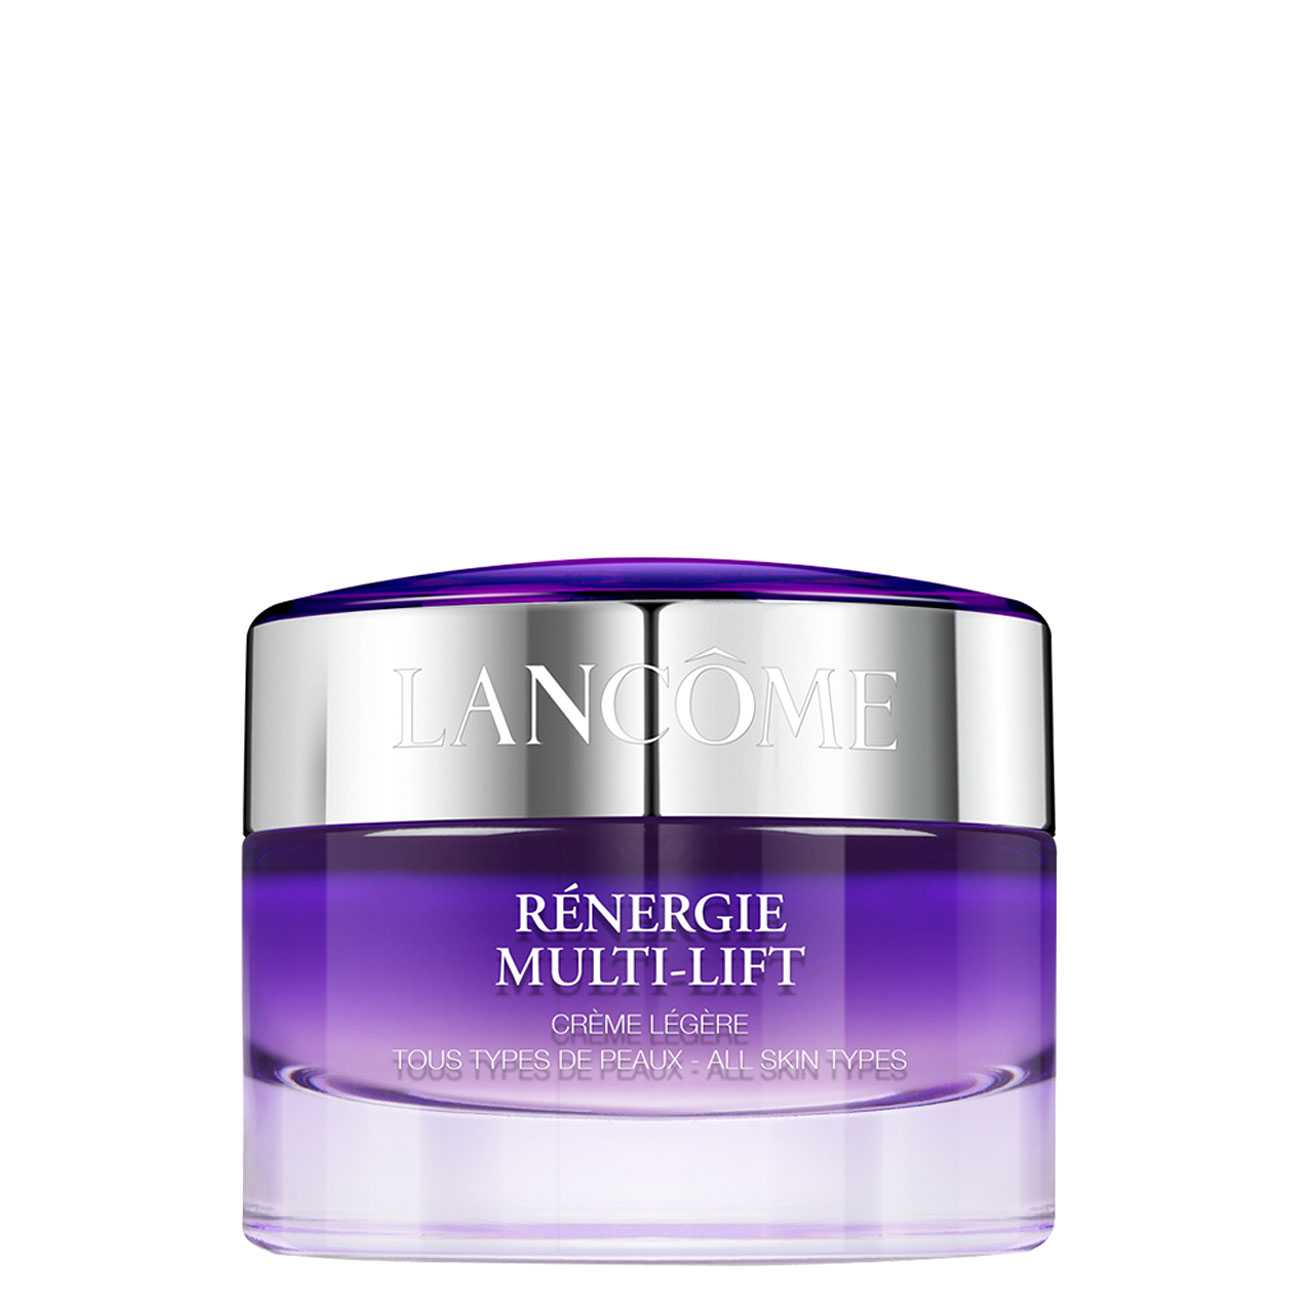 RENERGIE MULTI LIFT CREME LEGERE 50 ML imagine produs